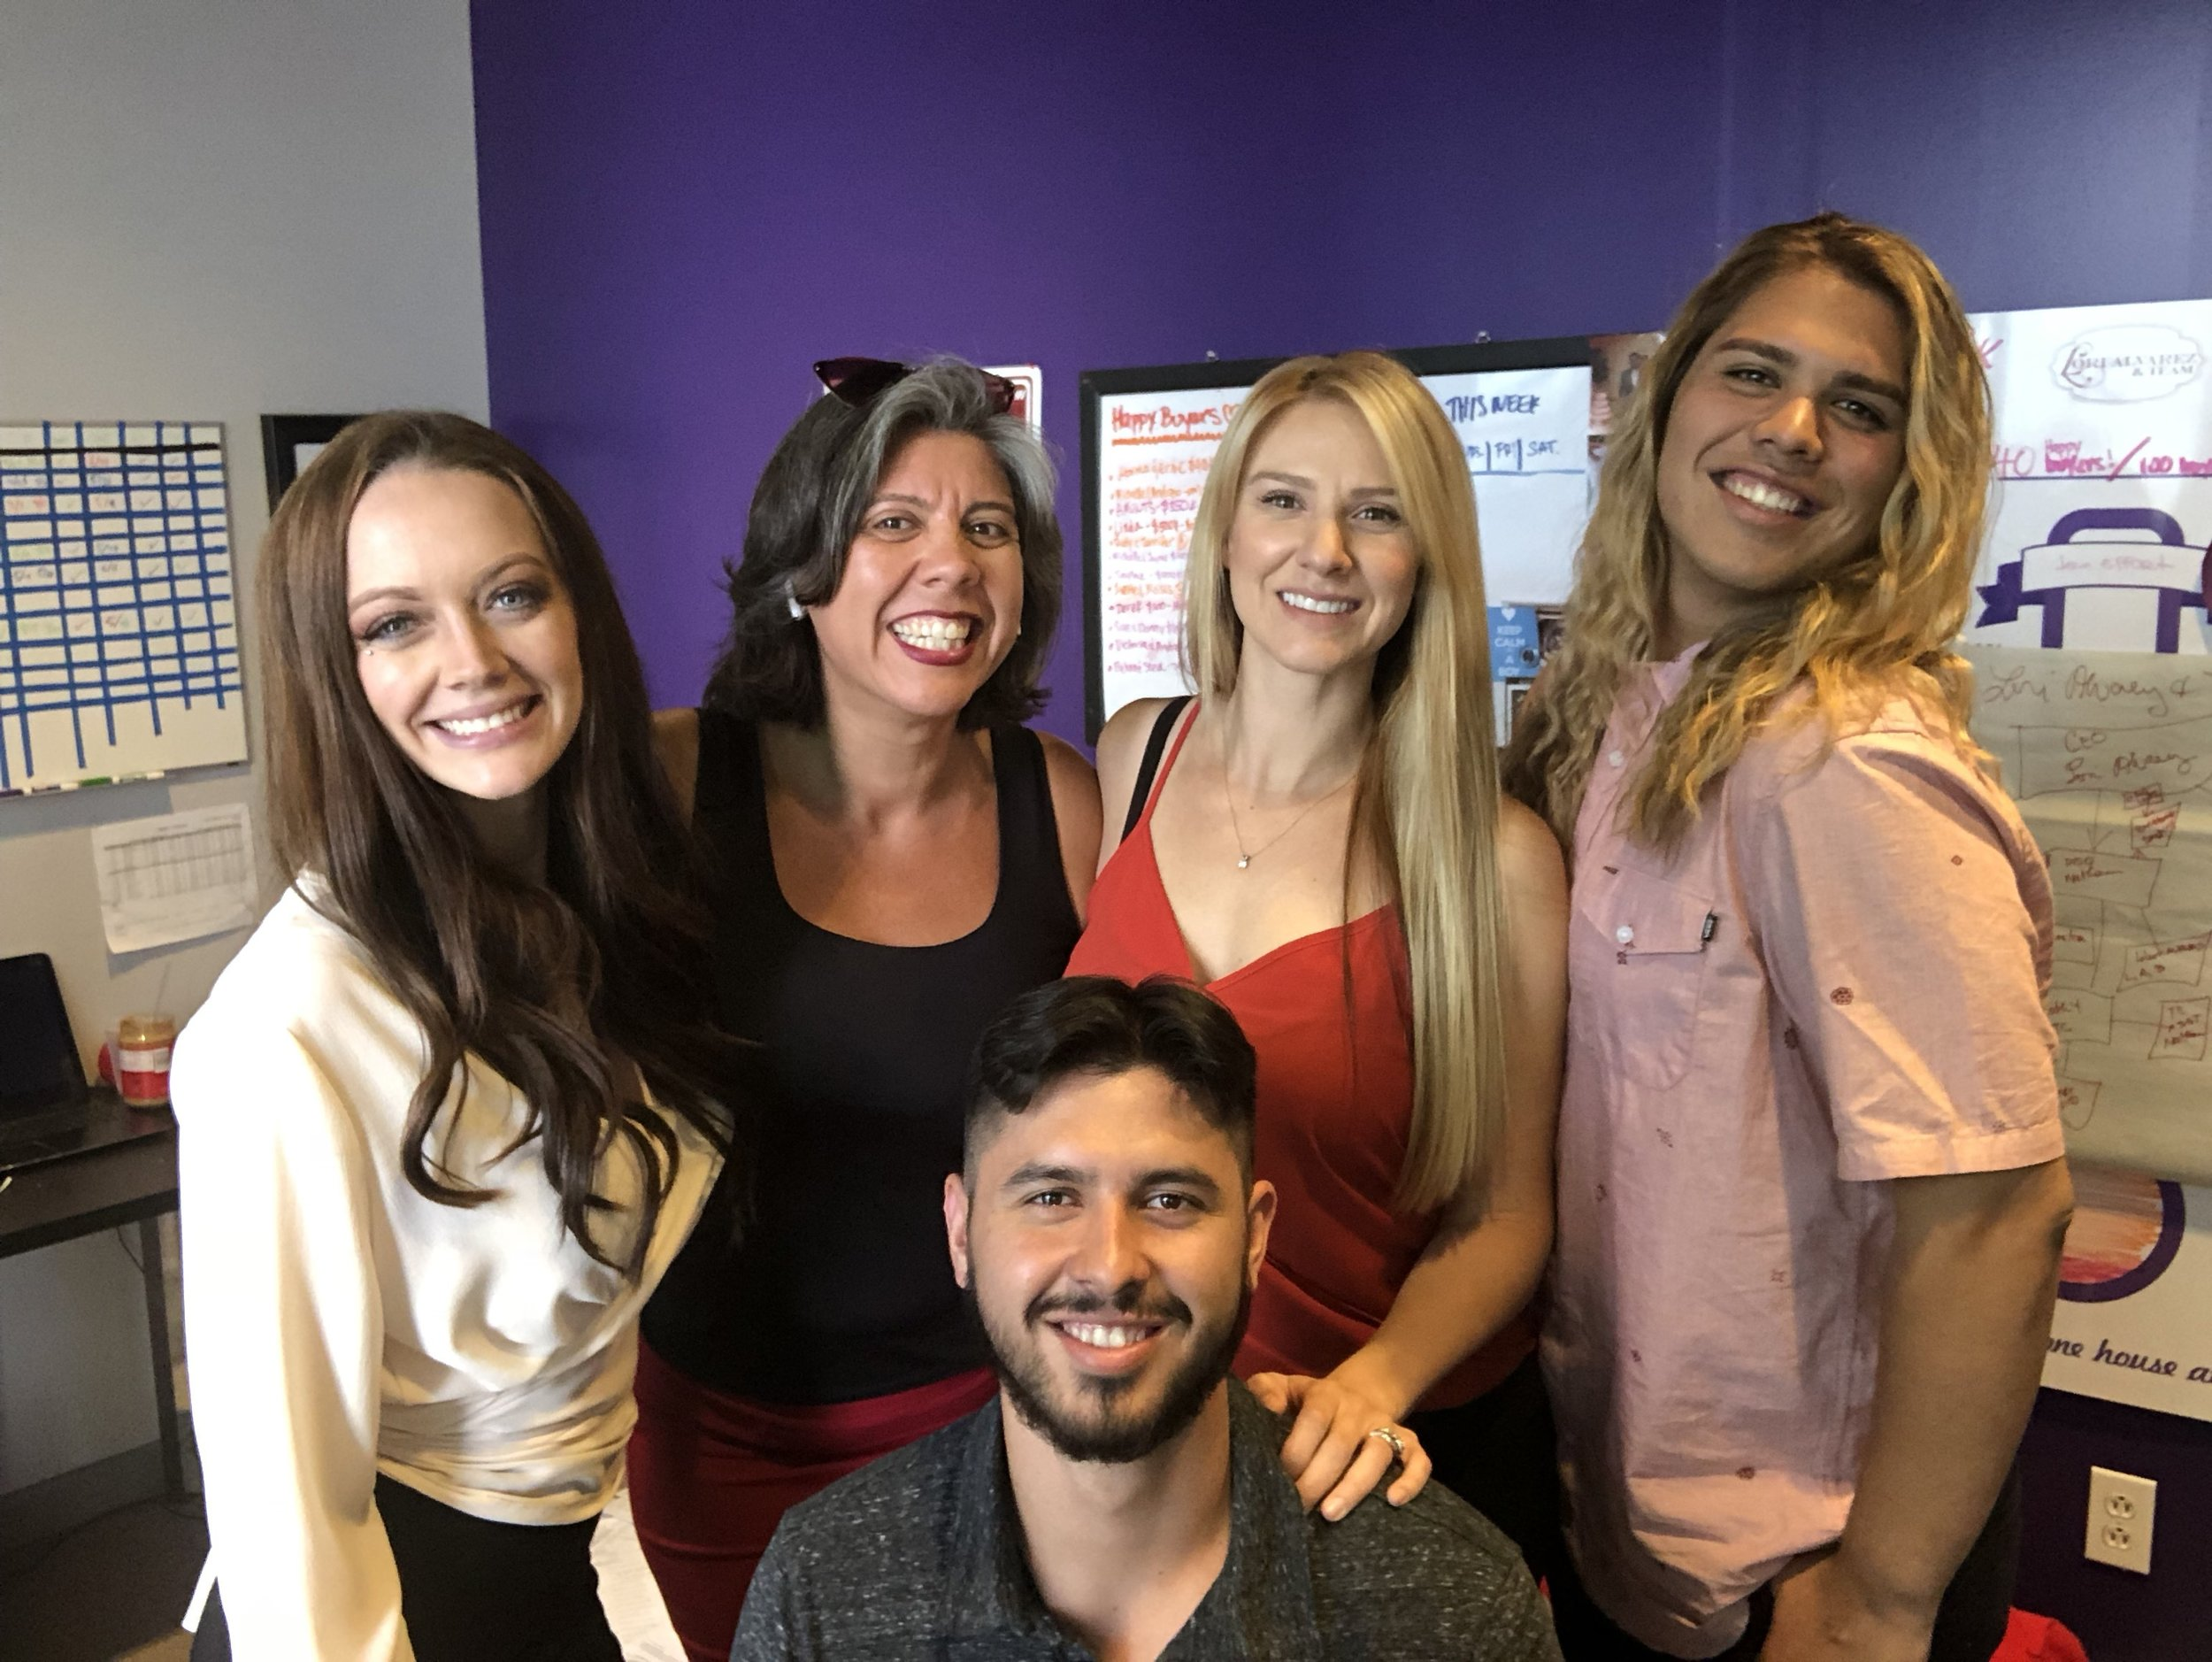 Here is the Team from left to right; Bethany Gonzalez, Realtor, Lori Alvarez, Realtor / CEO, Amy Cruz, Realtor, Nick Alvarez, Events Coordinator, Nathan Alvarez, Realtor and Team Manager!